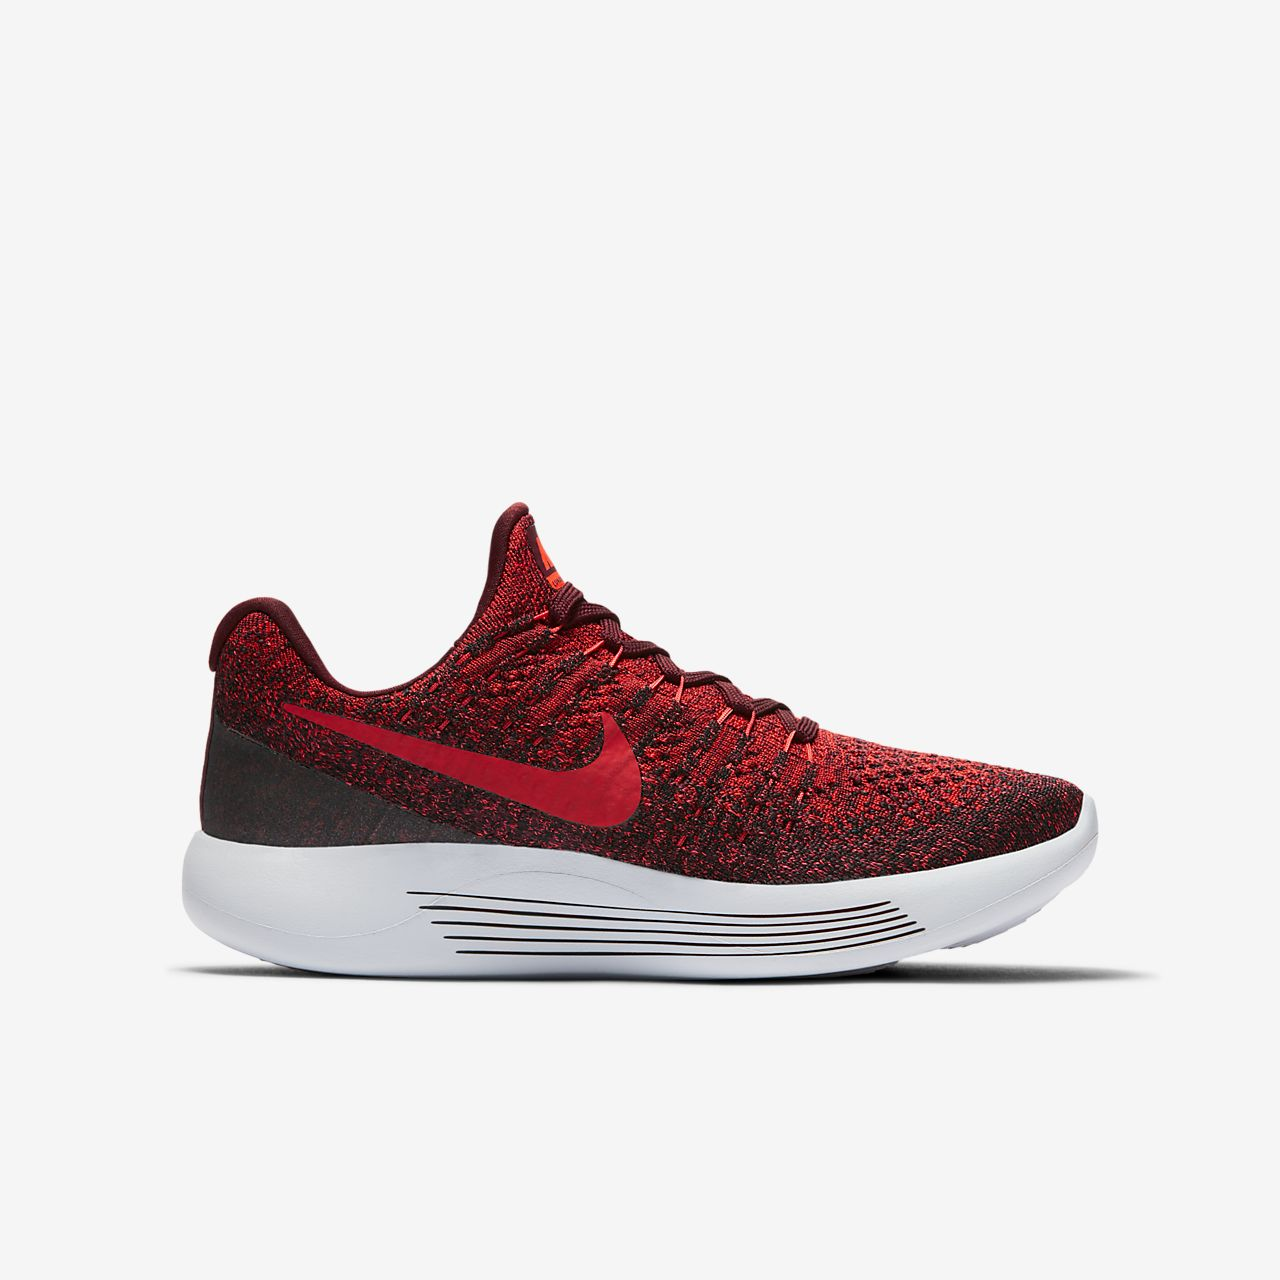 ... Nike LunarEpic Low Flyknit 2 Big Kids' Running Shoe